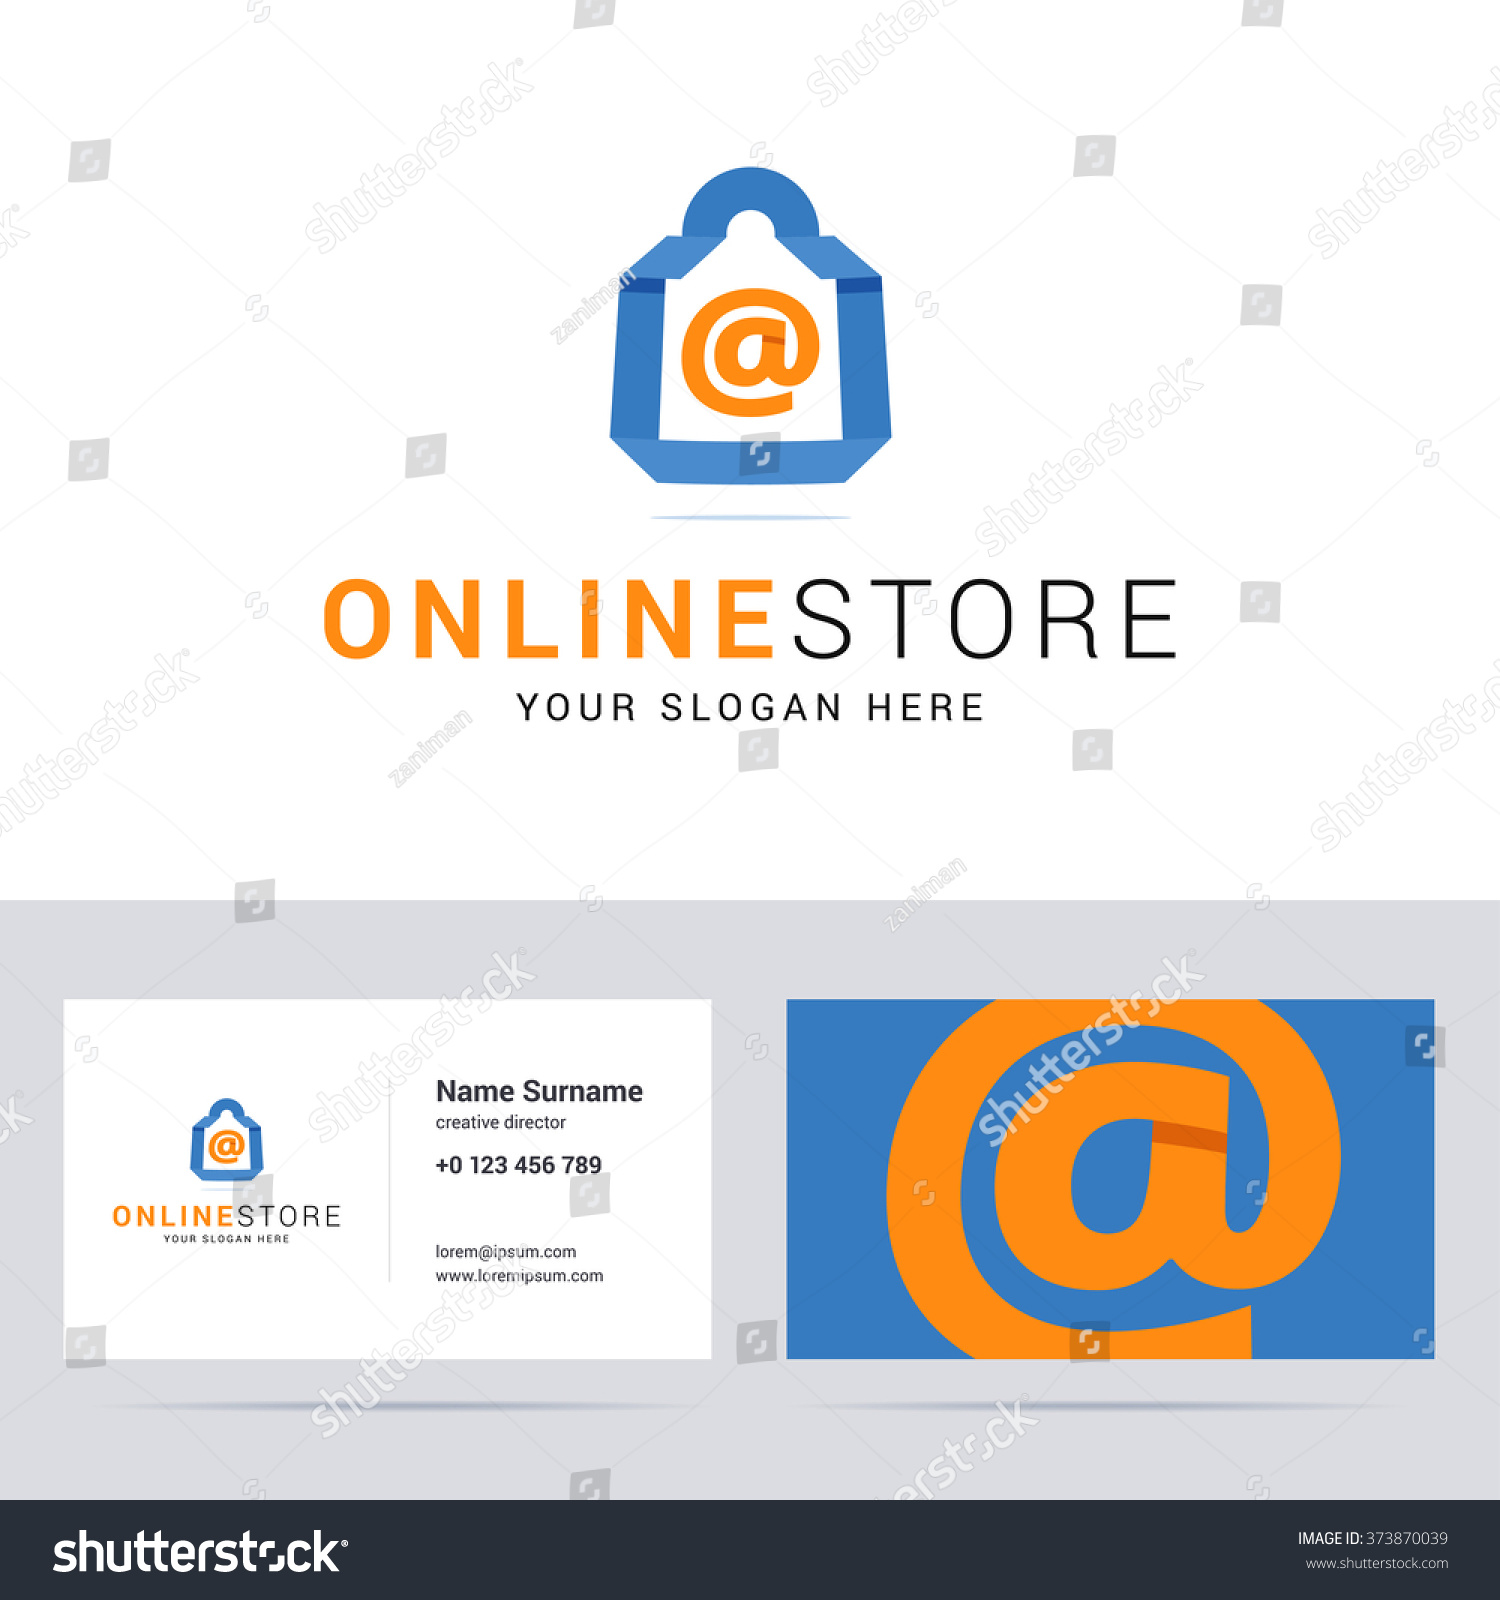 Logo business card template online shop stock vector 373870039 logo and business card template for online shop online store blue shop bag sign fbccfo Gallery